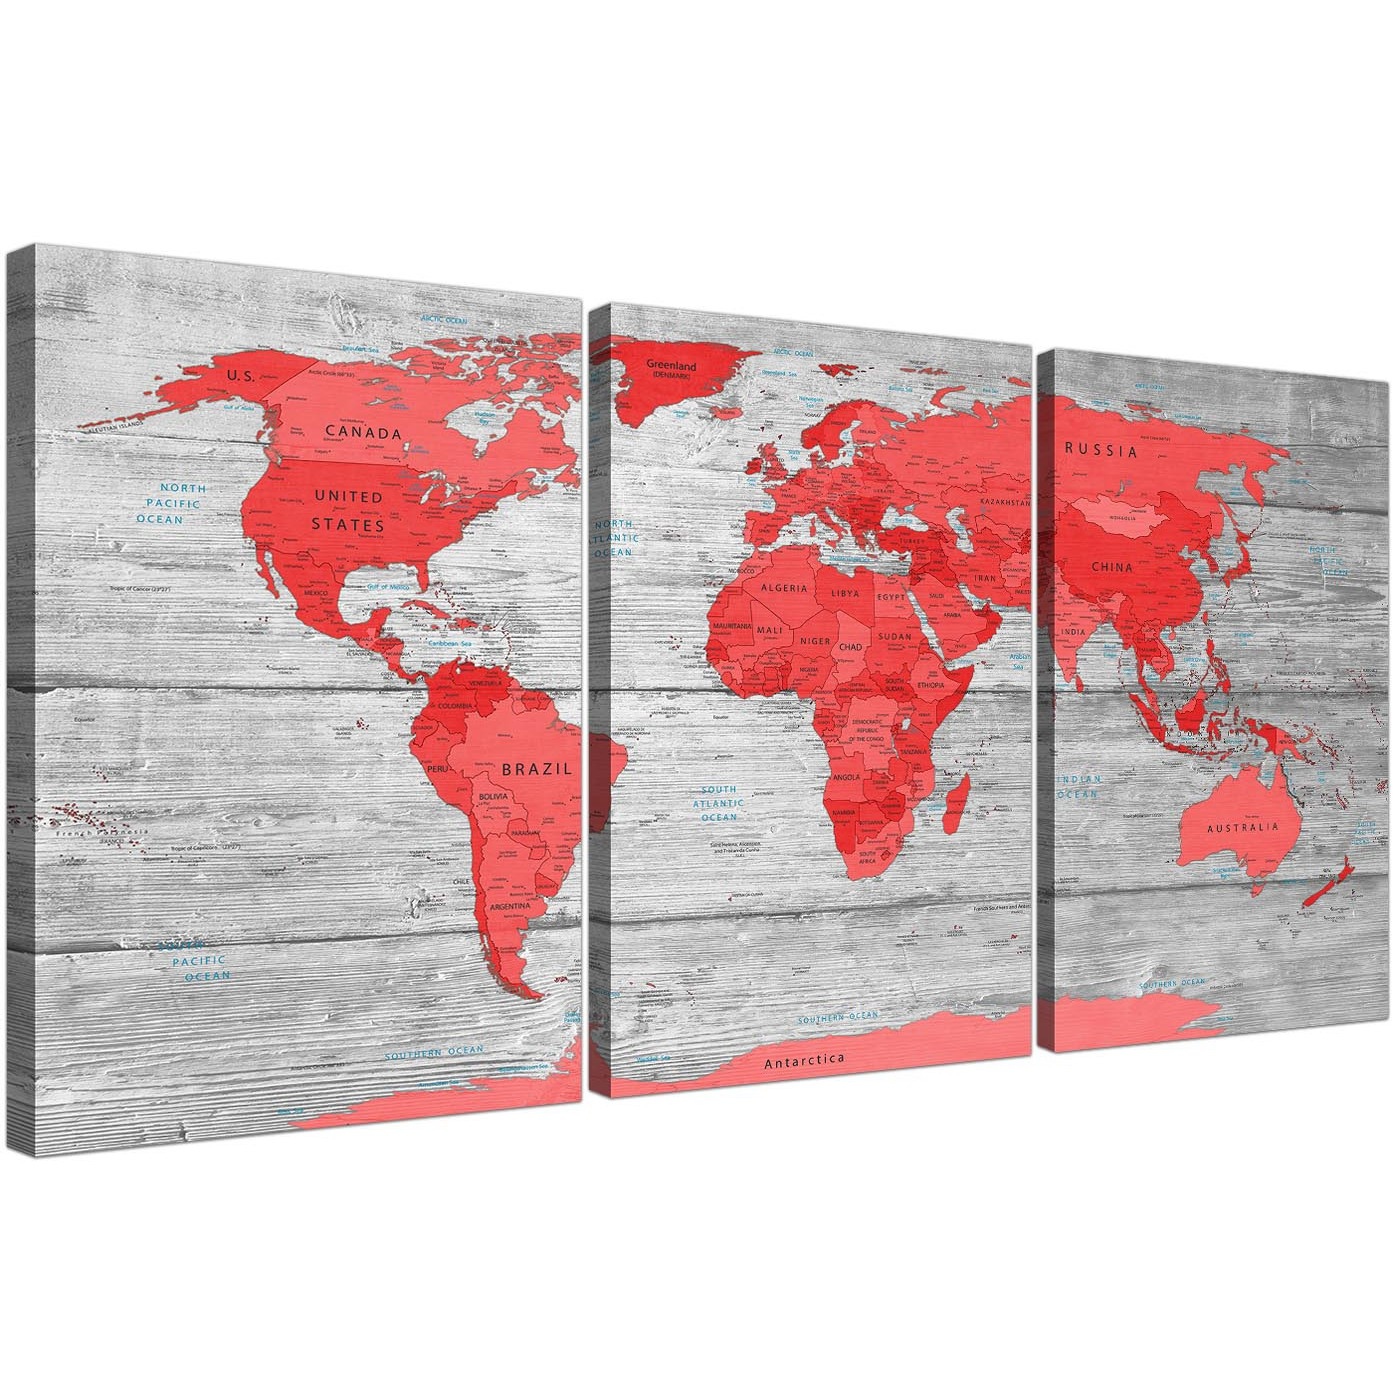 Large Red Grey Map of the World Atlas Canvas Wall Art Print Split 3 Panel -  3300